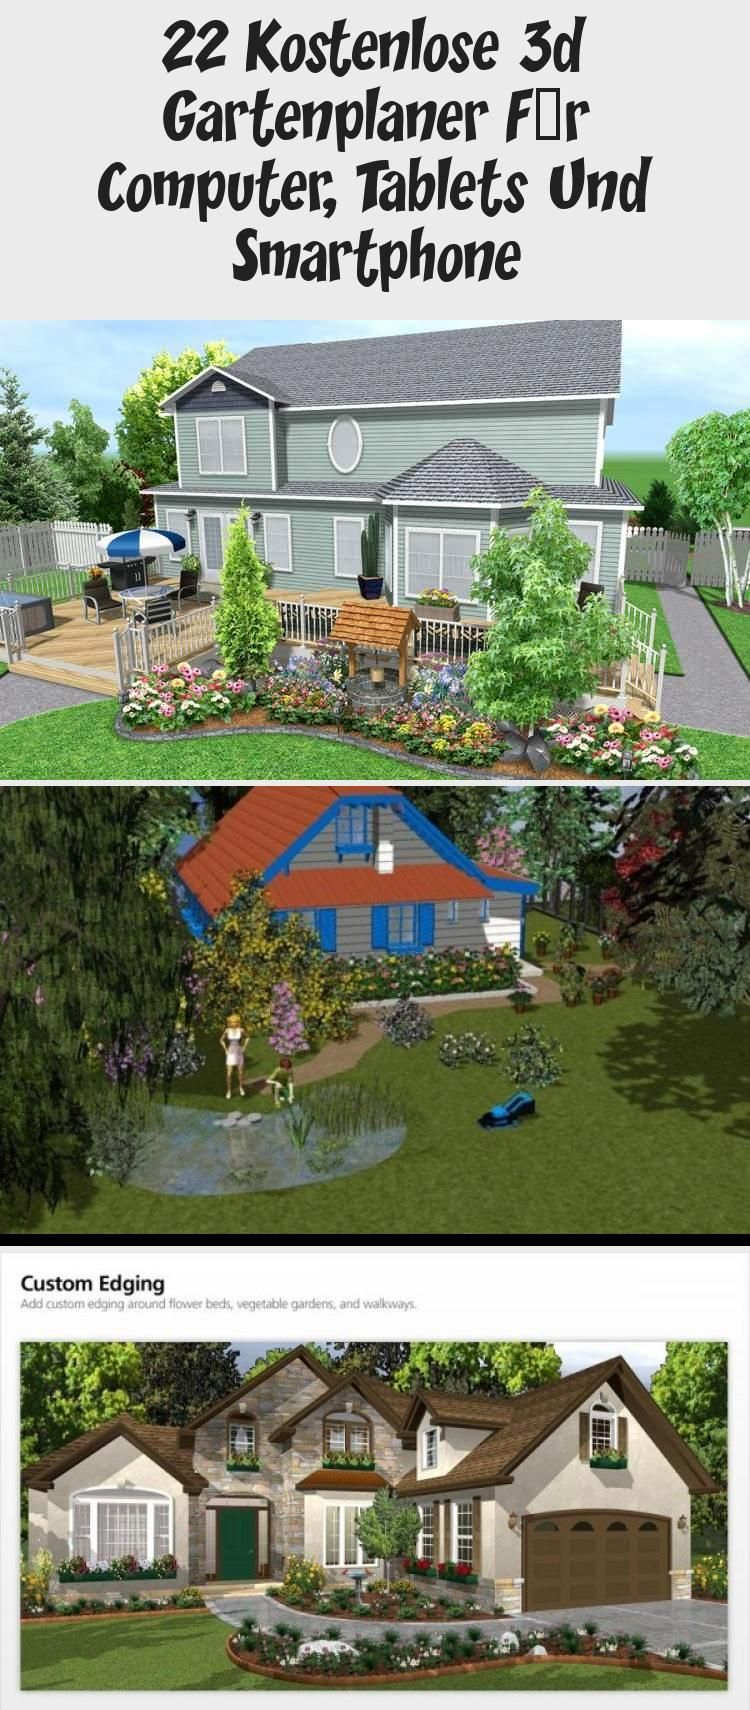 Planer Landschaftsbau Online Software Mein Schoener Garten Planungstool Gartenplanungkinder Ga In 2020 Amazing Landscaping Ideas Garden Spaces Landscaping With Rocks